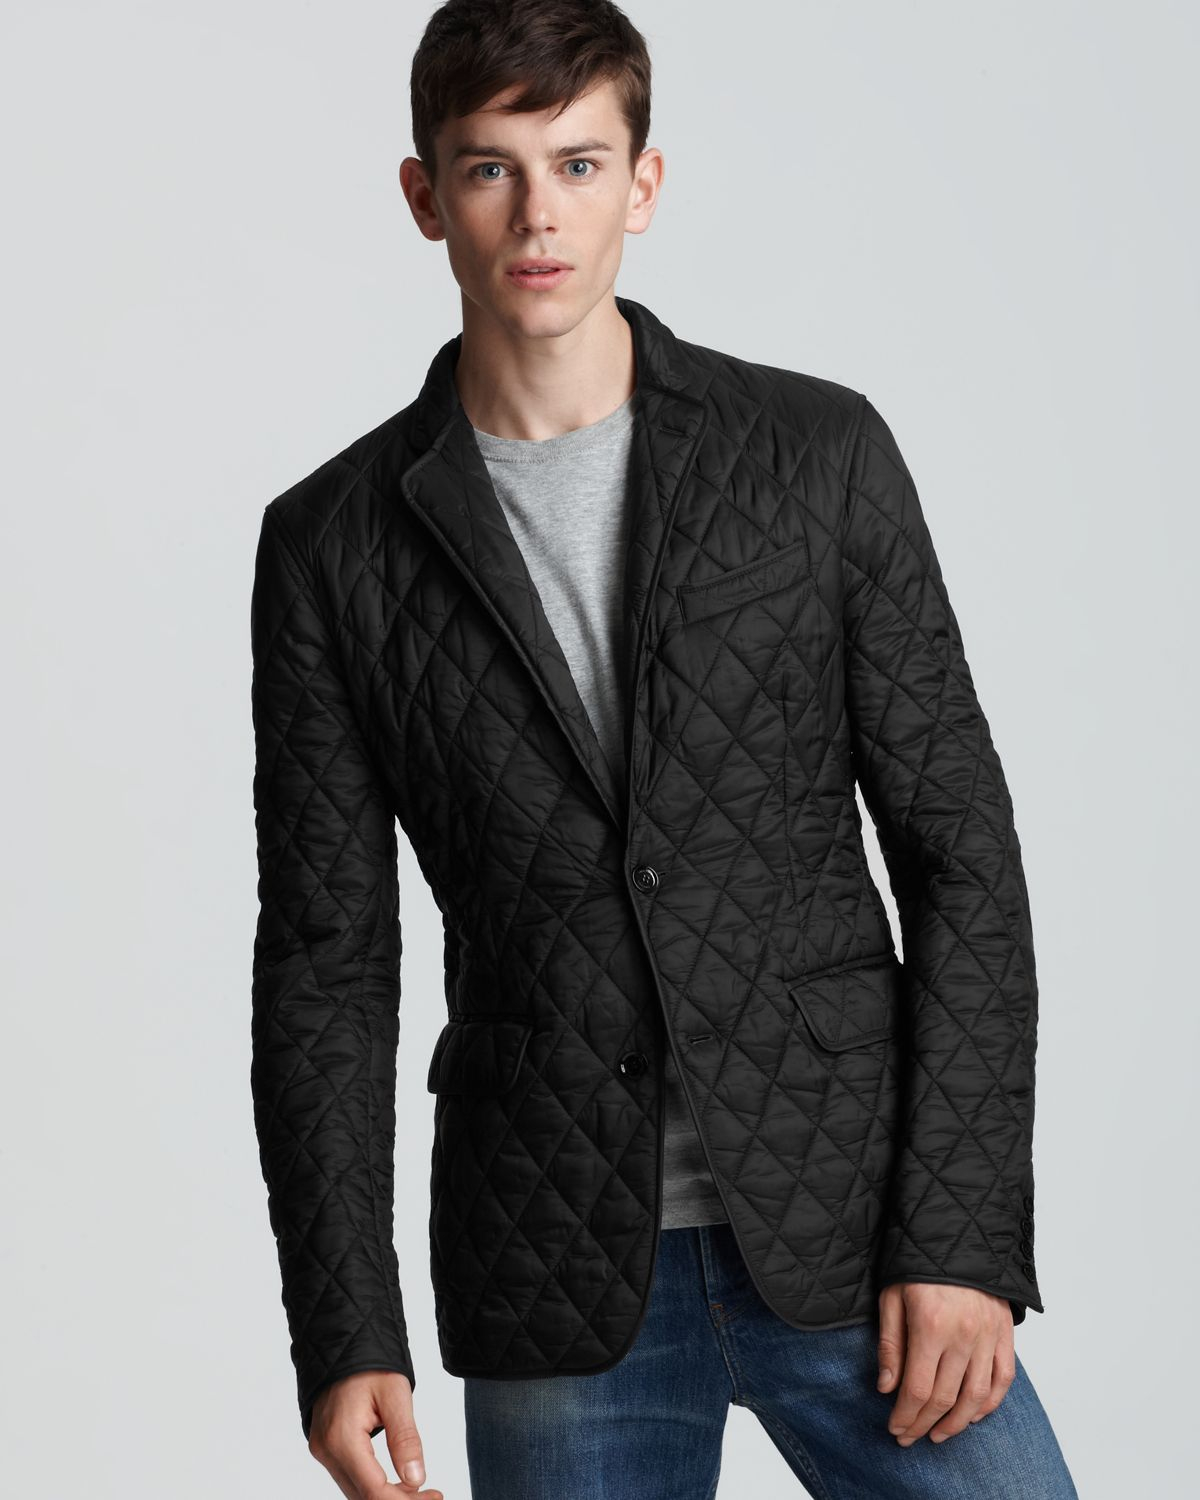 Burberry London Ledburry Quilted Sport Coat In Black For